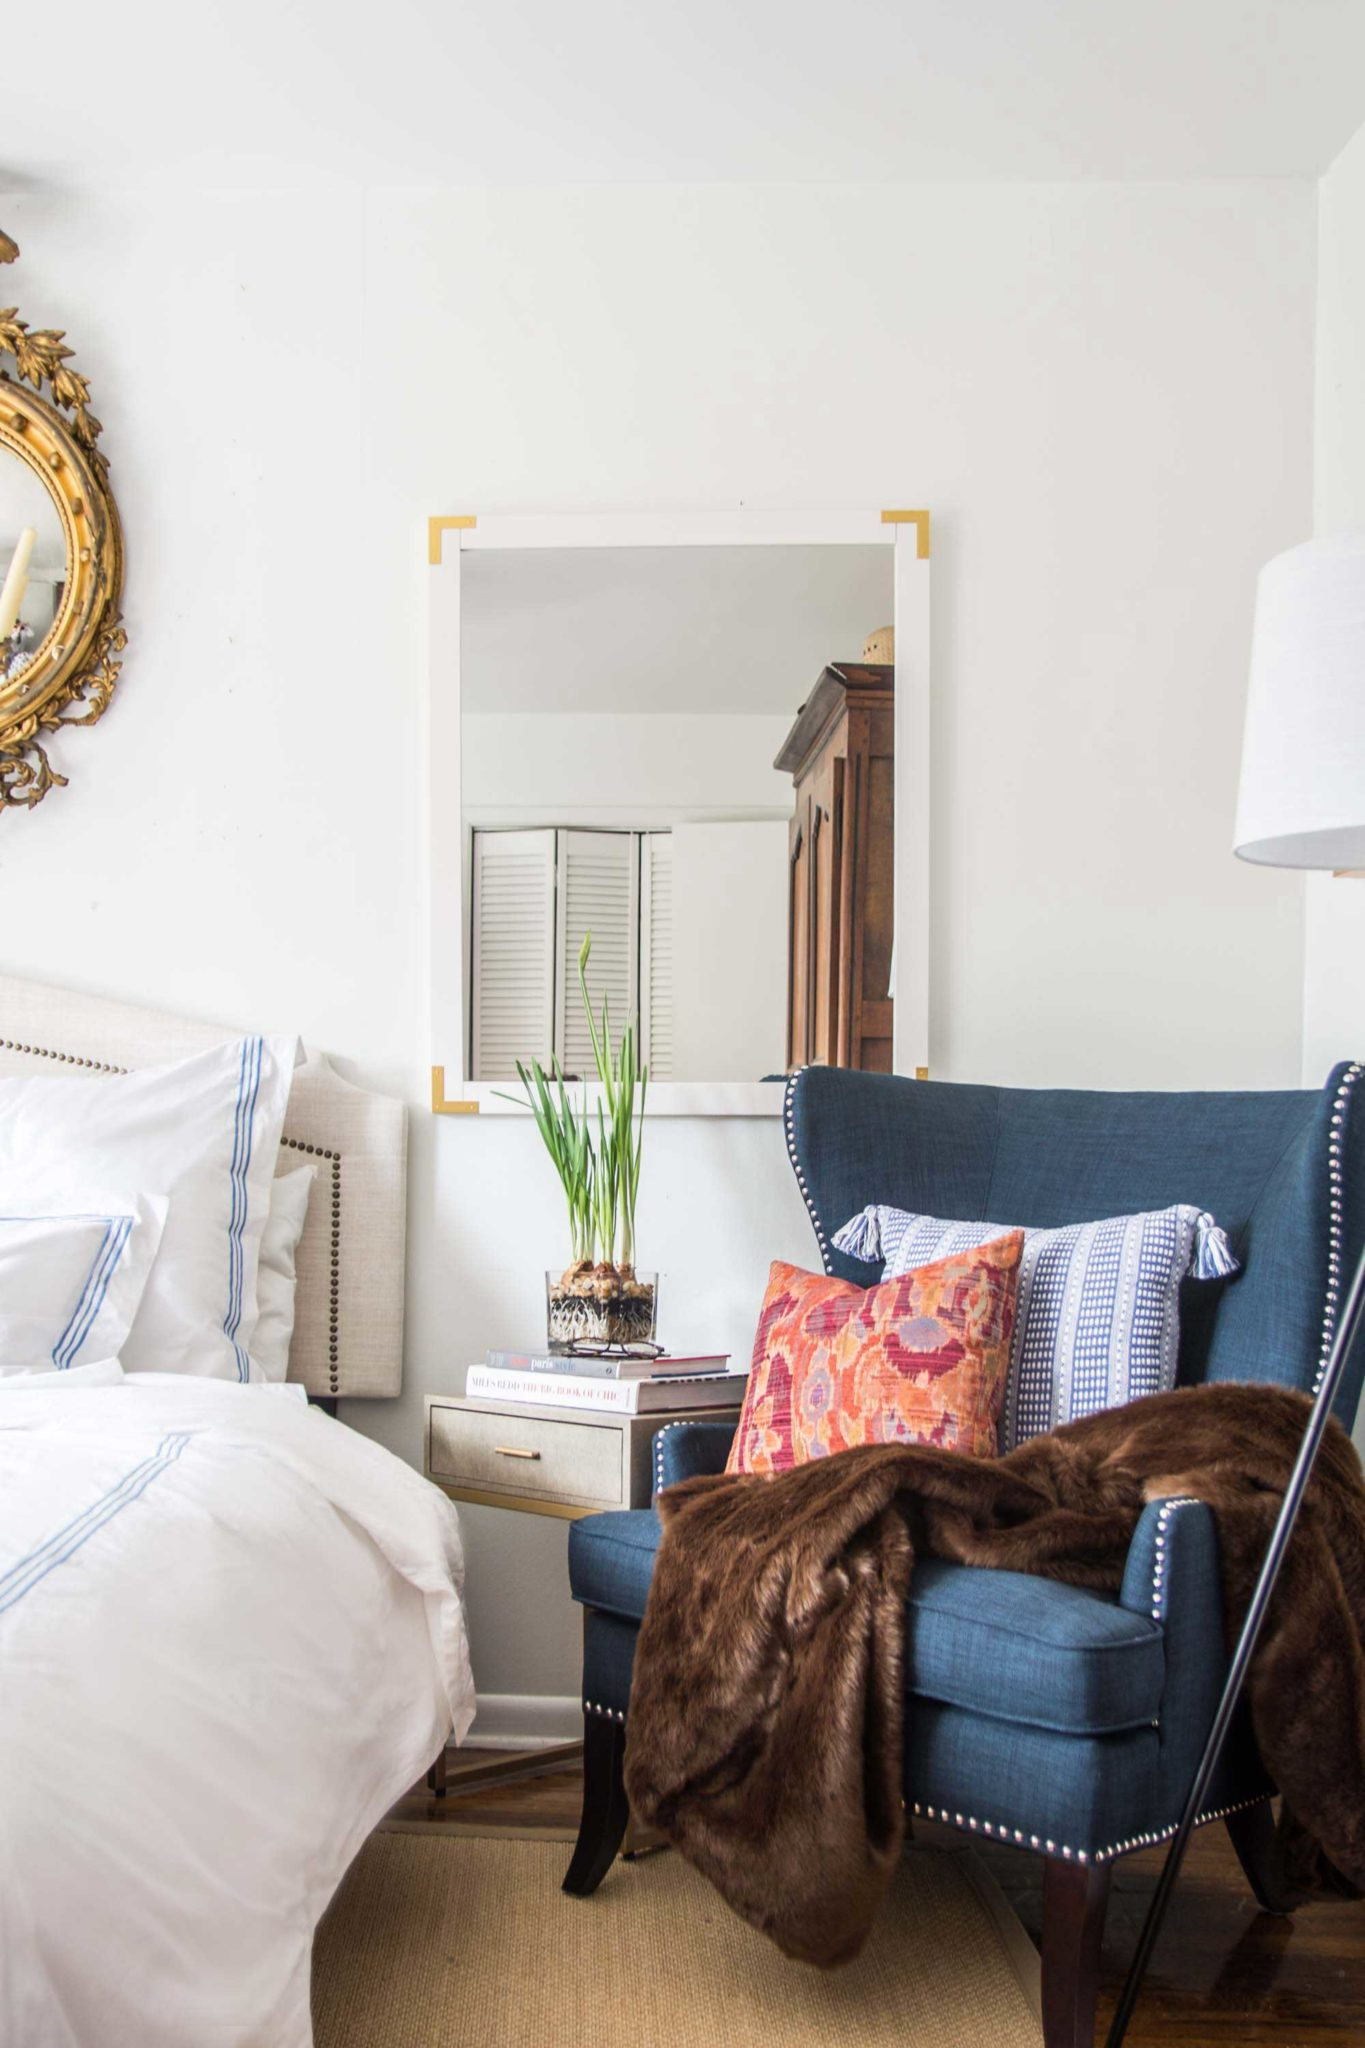 why your bedroom needs accent chair thou swell blue wingback chairs and table this new side room goes beautifully with the swirl lamp fun pillows shared last post just love